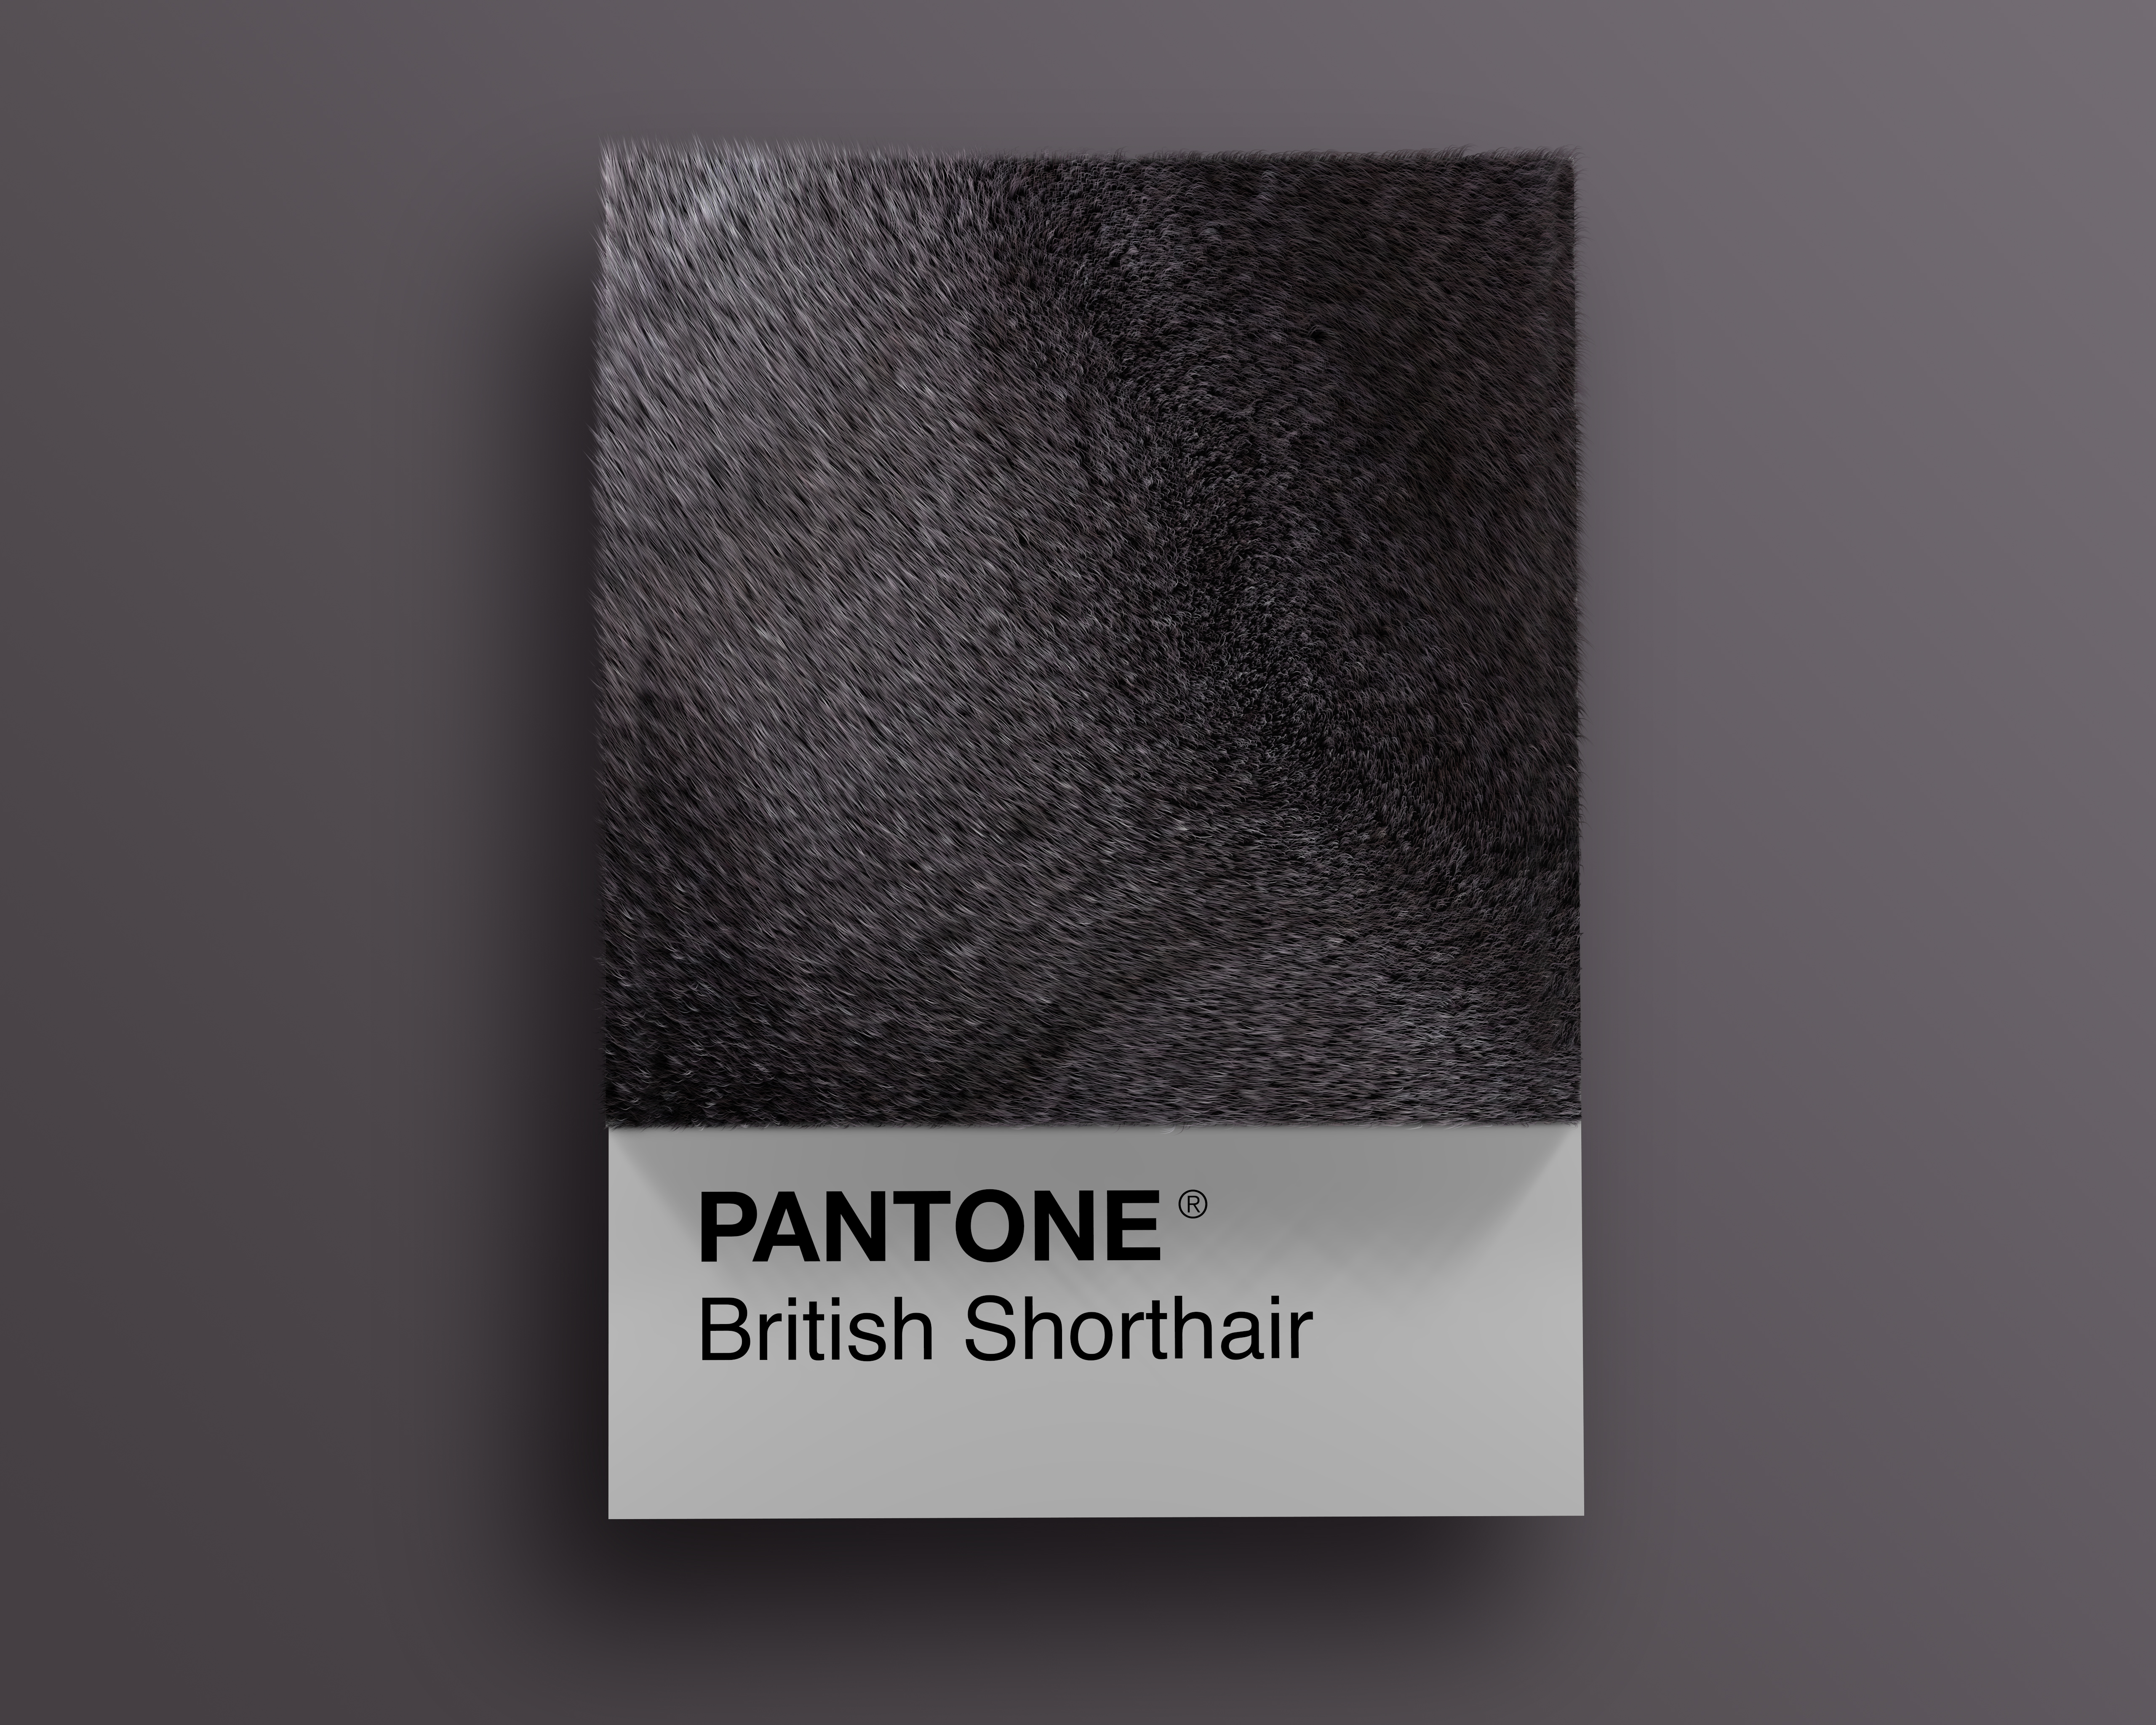 Alessio D'Amico - Cat breeds as Pantone | Collater.al 11